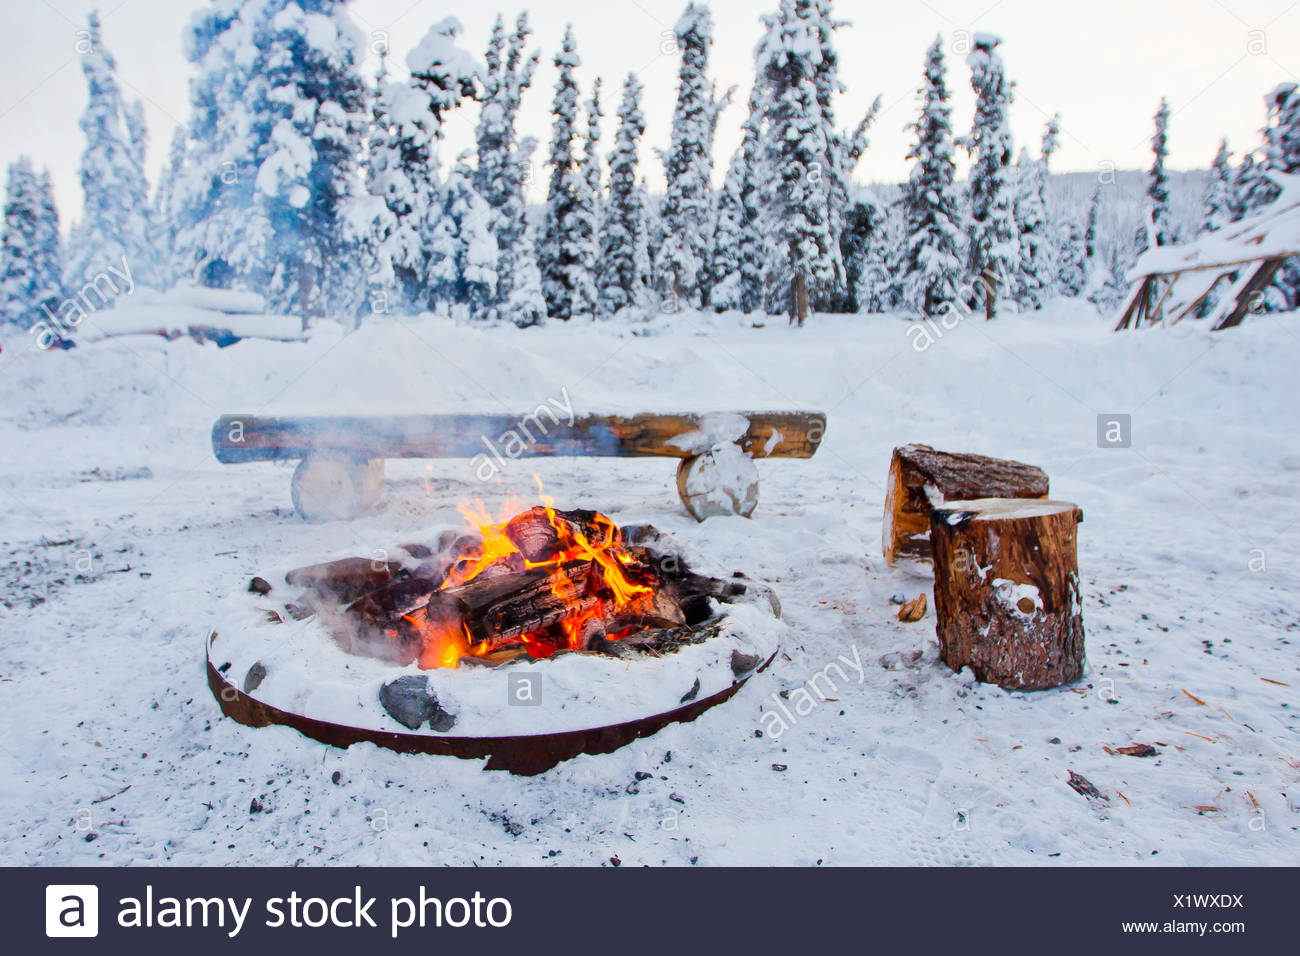 A warm fire burning at a campsite in a snowy evergreen forest. - Stock Image